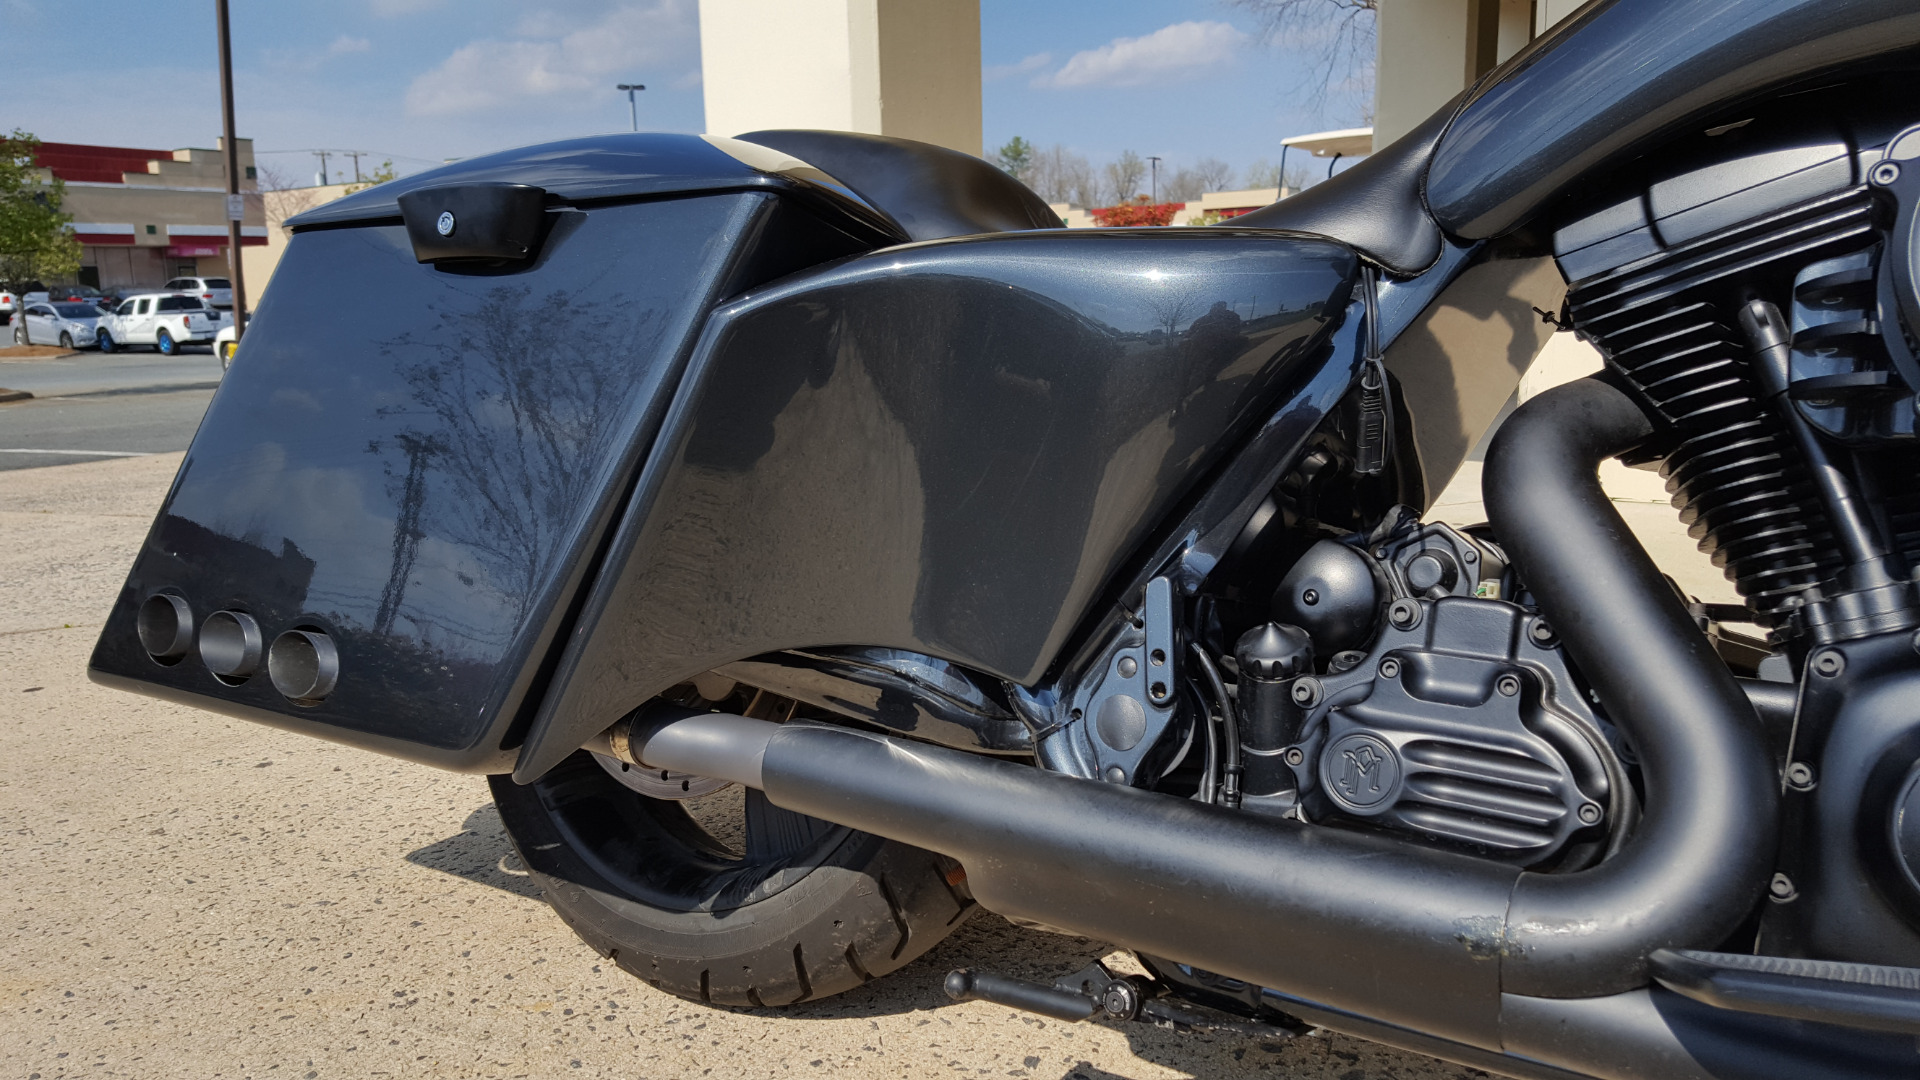 Used 2012 Harley-Davidson ROAD GLIDE NASI BAGGER for sale Sold at Formula Imports in Charlotte NC 28227 11